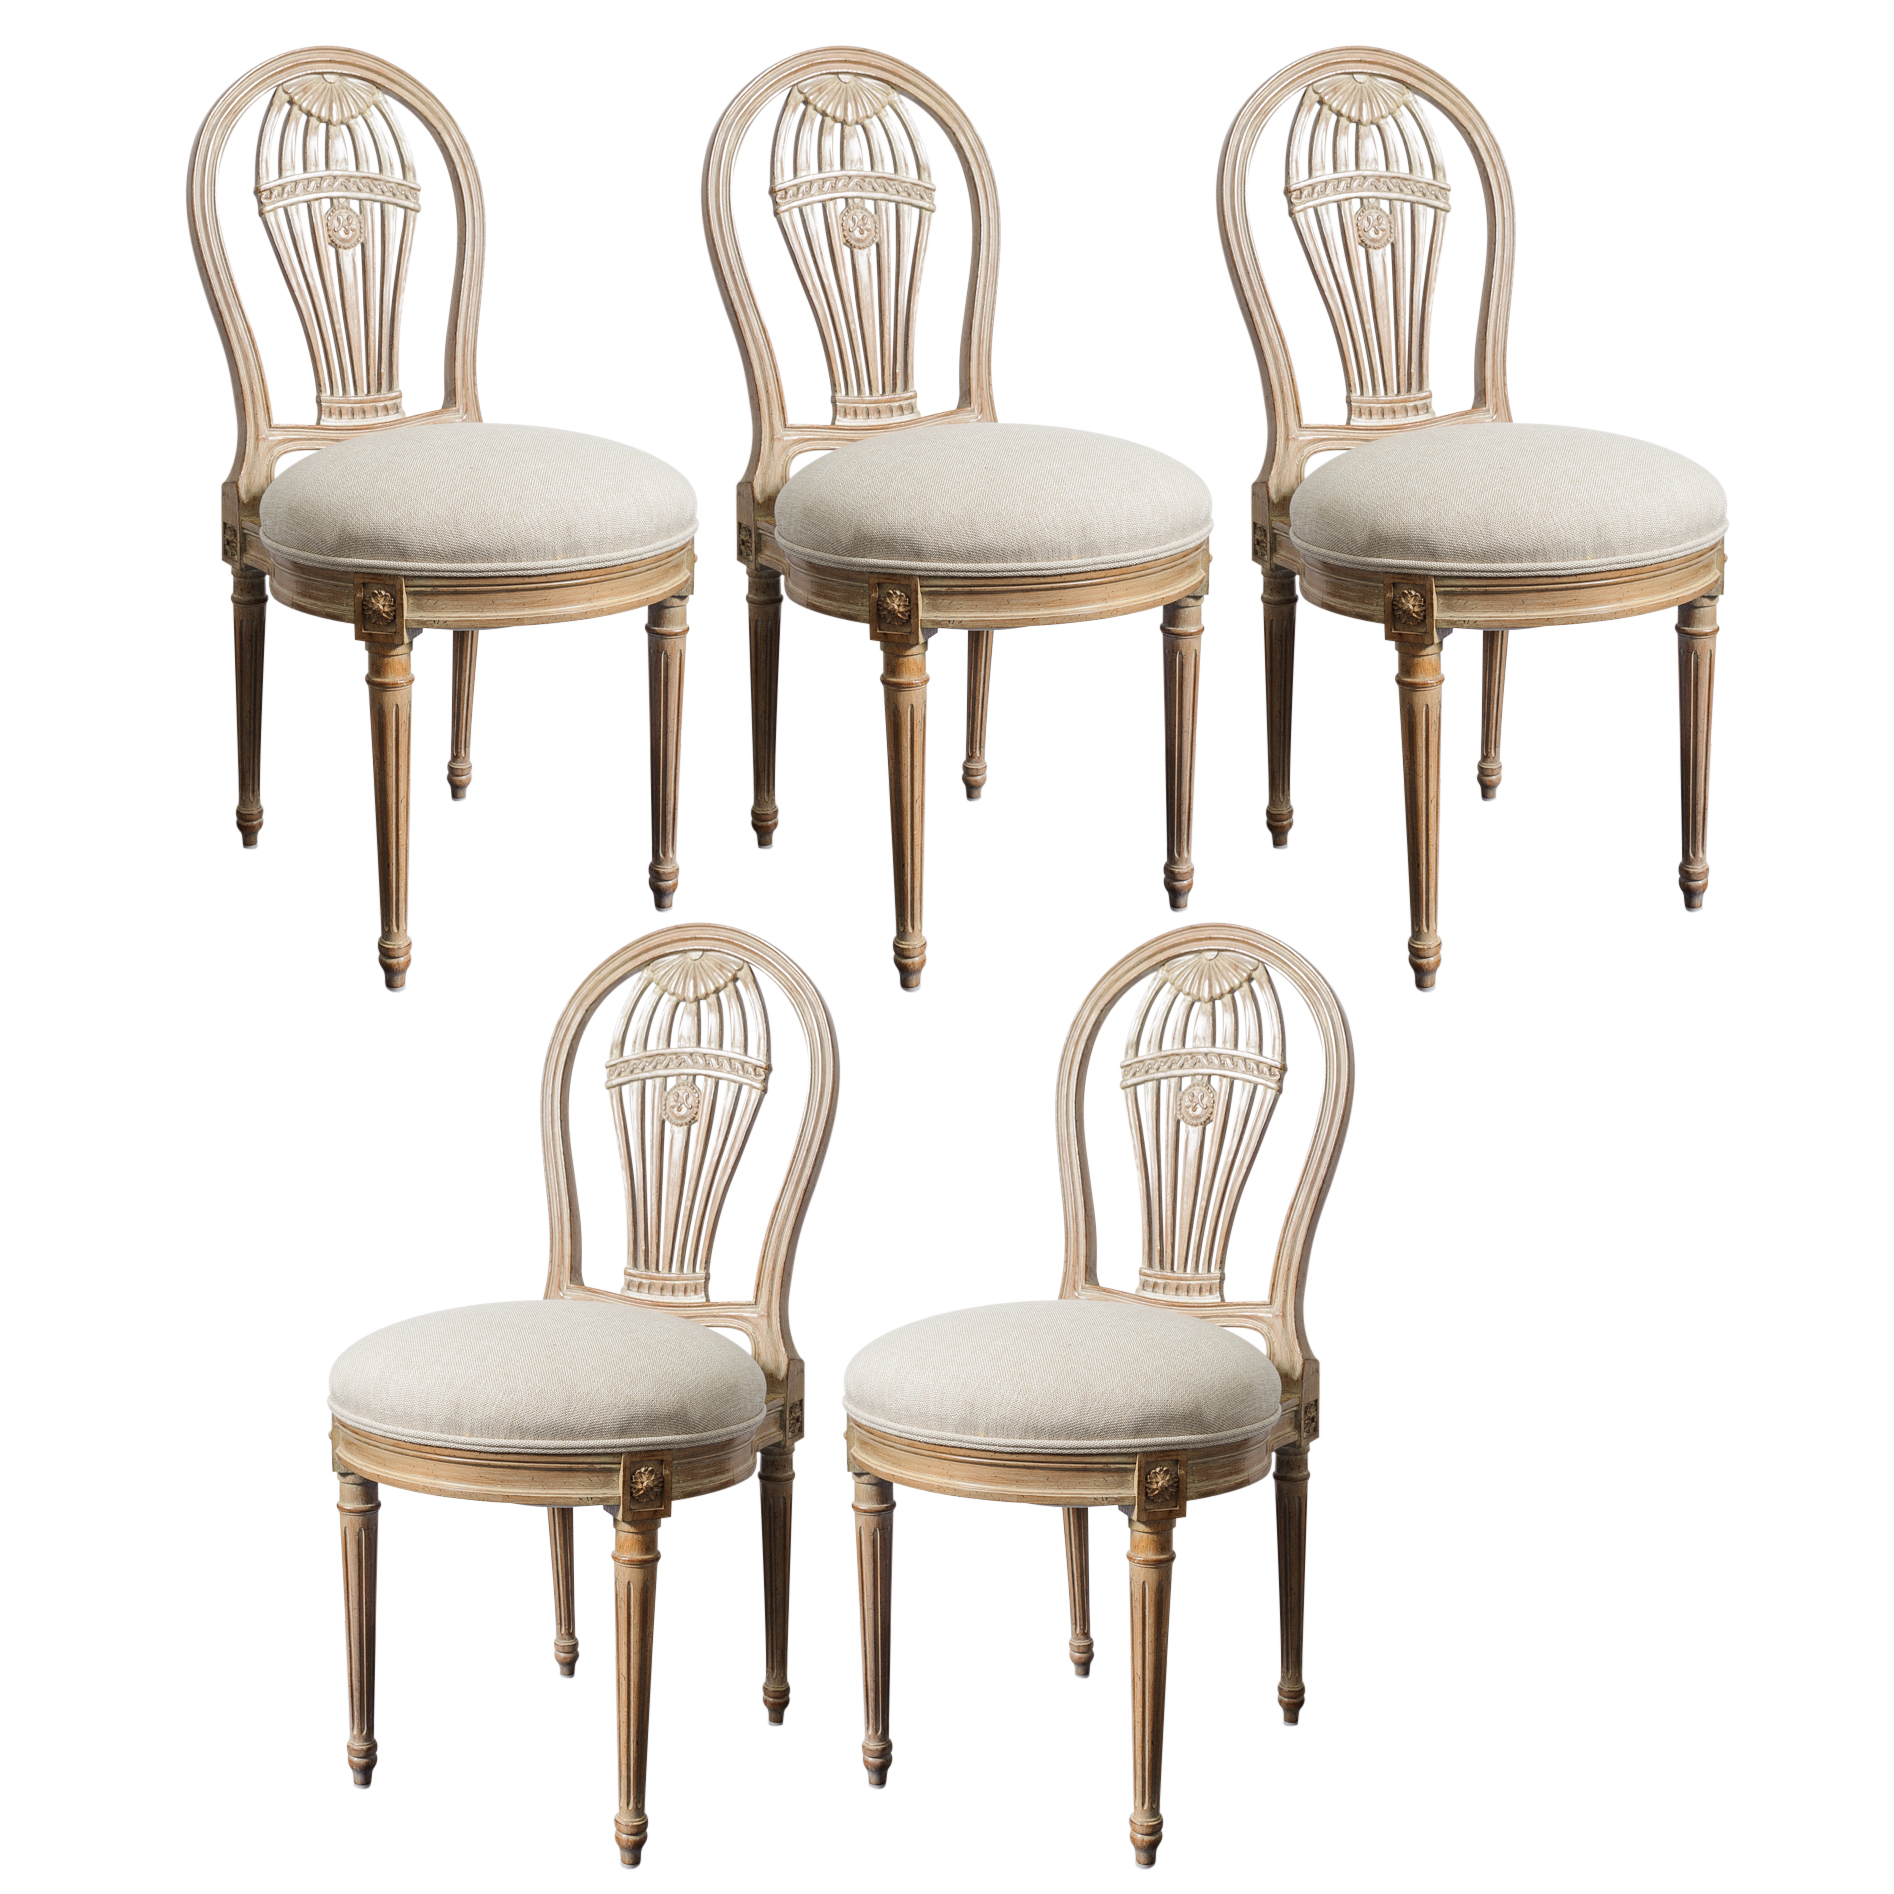 chair with balloons computer racing vintage set of 5 balloon chairs maison jansen style on